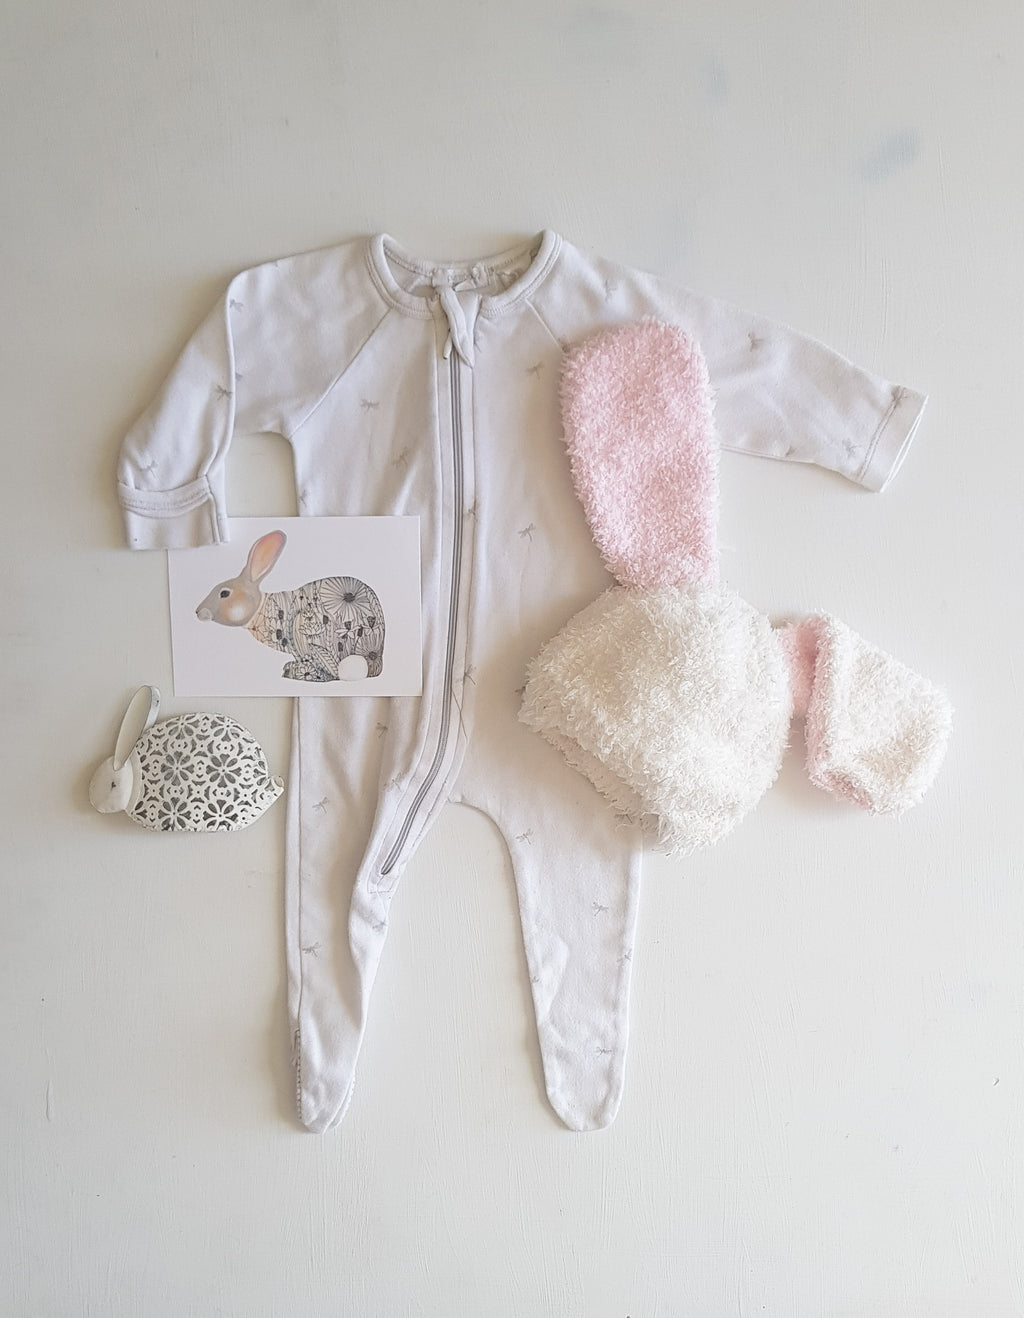 THRIFT Purebaby - Dragonfly Coverall Size 0000